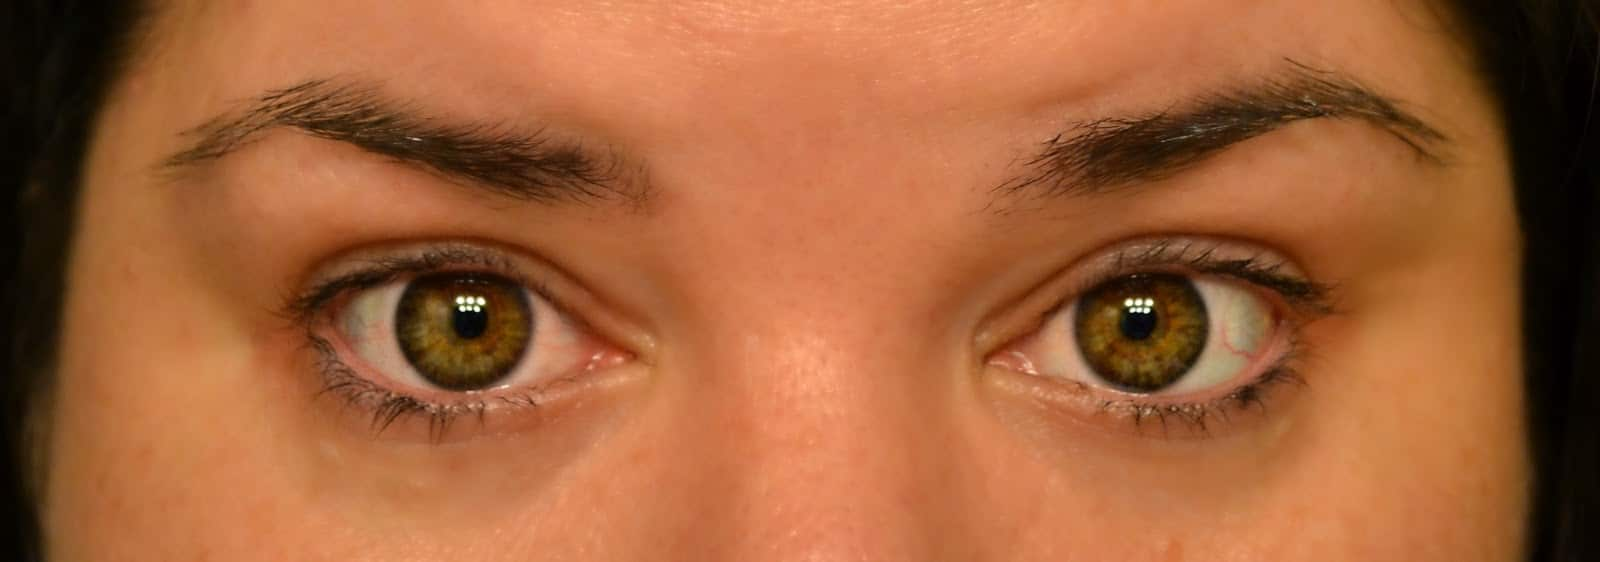 And after brow correction permanent eyeliner permanent eyebrows